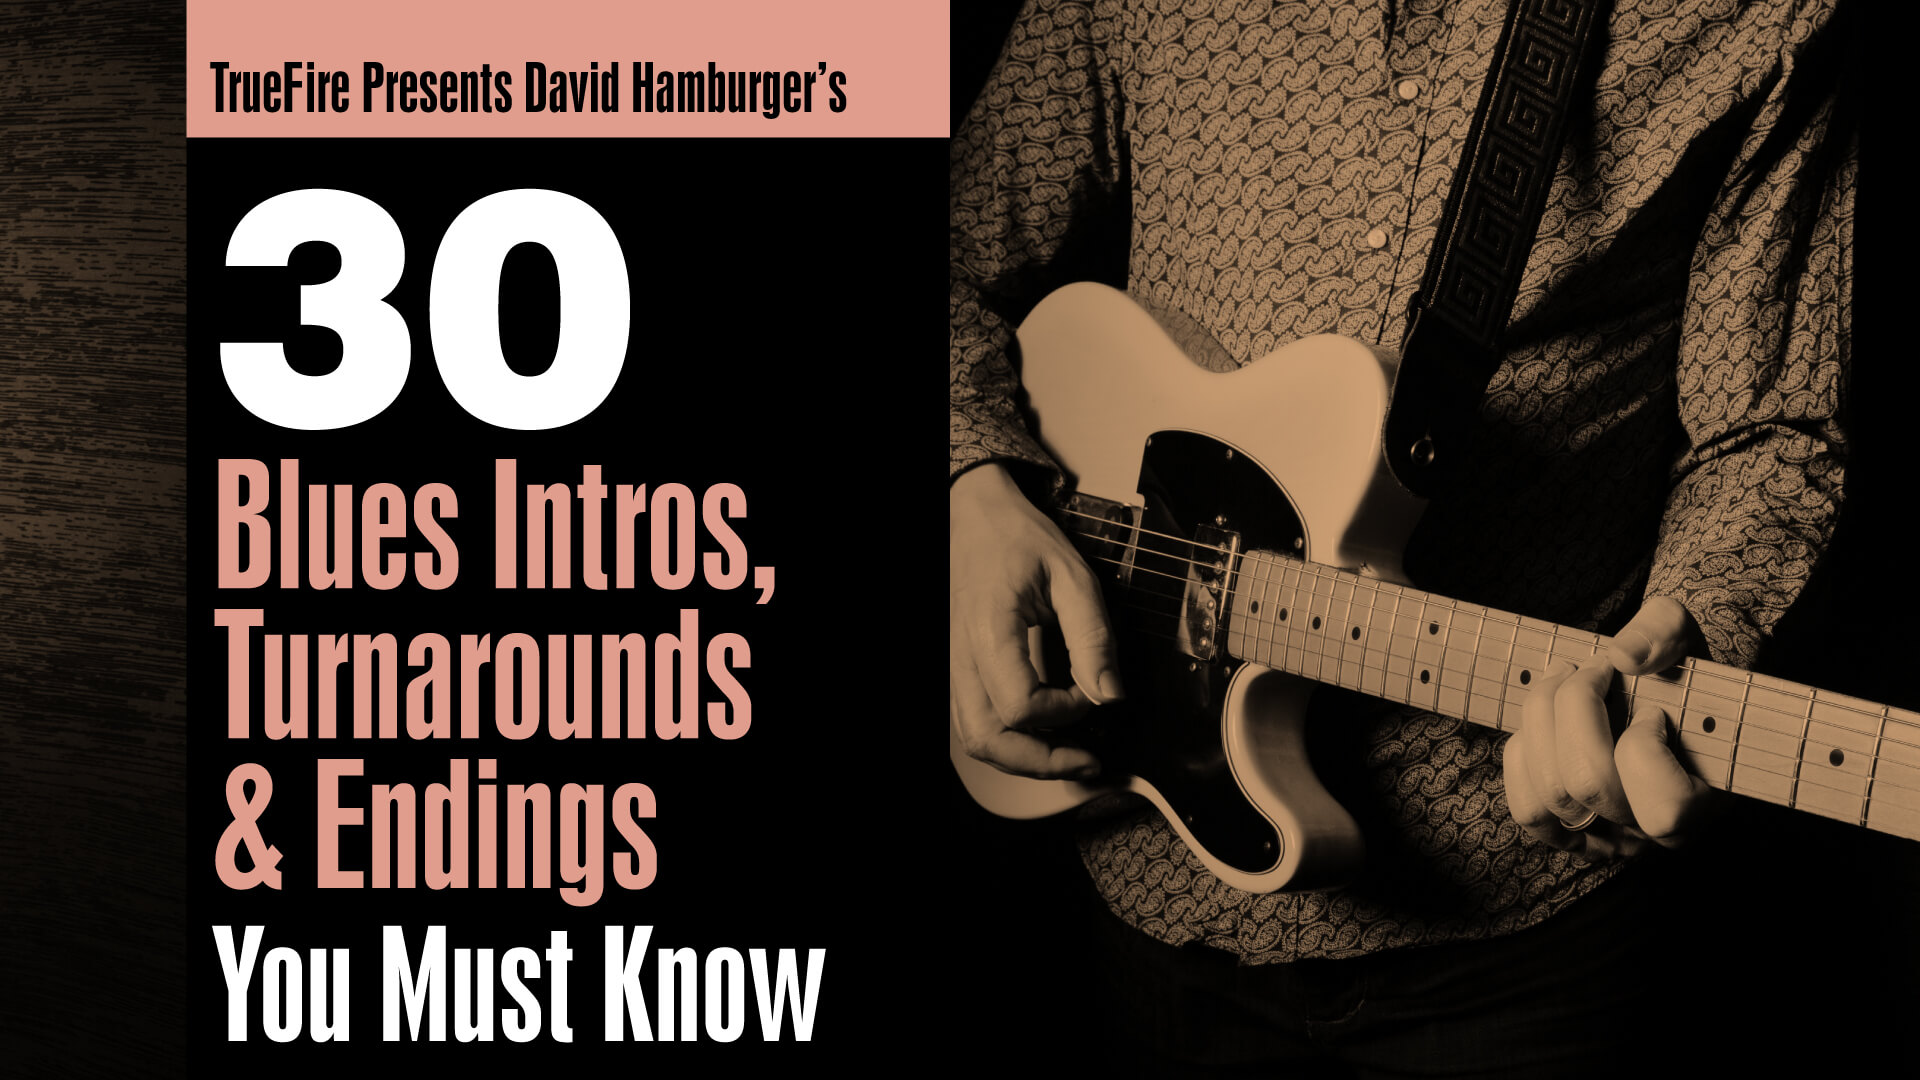 30 Blues Intros, Turnarounds, & Endings - Guitar Lessons - David Hamburger  - TrueFire